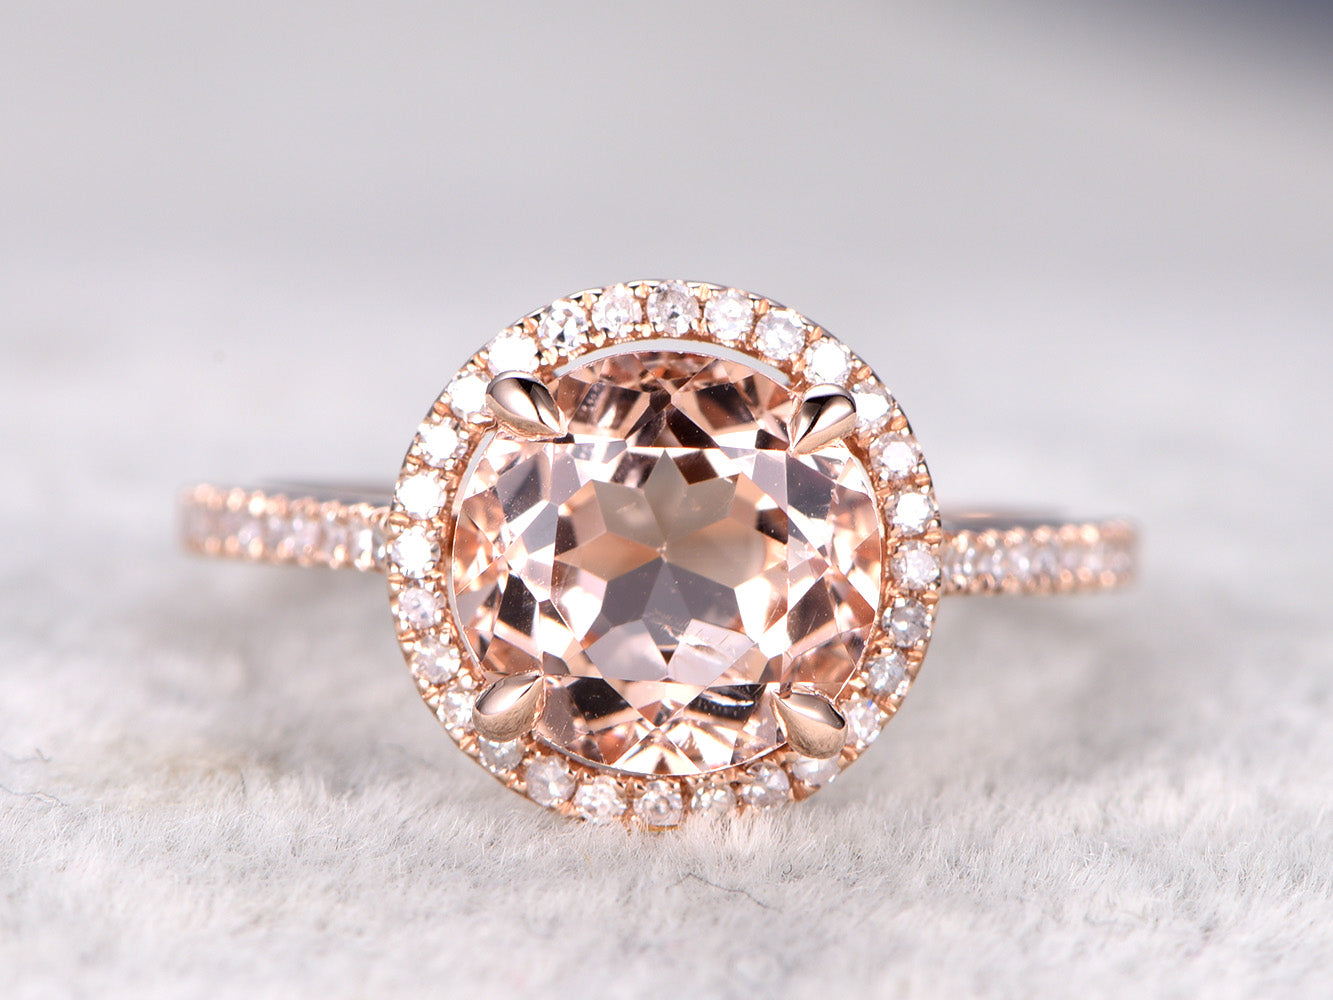 Morganite engagement ring 9mm round cut morganite rose gold diamond wedding band solid 14k/18k